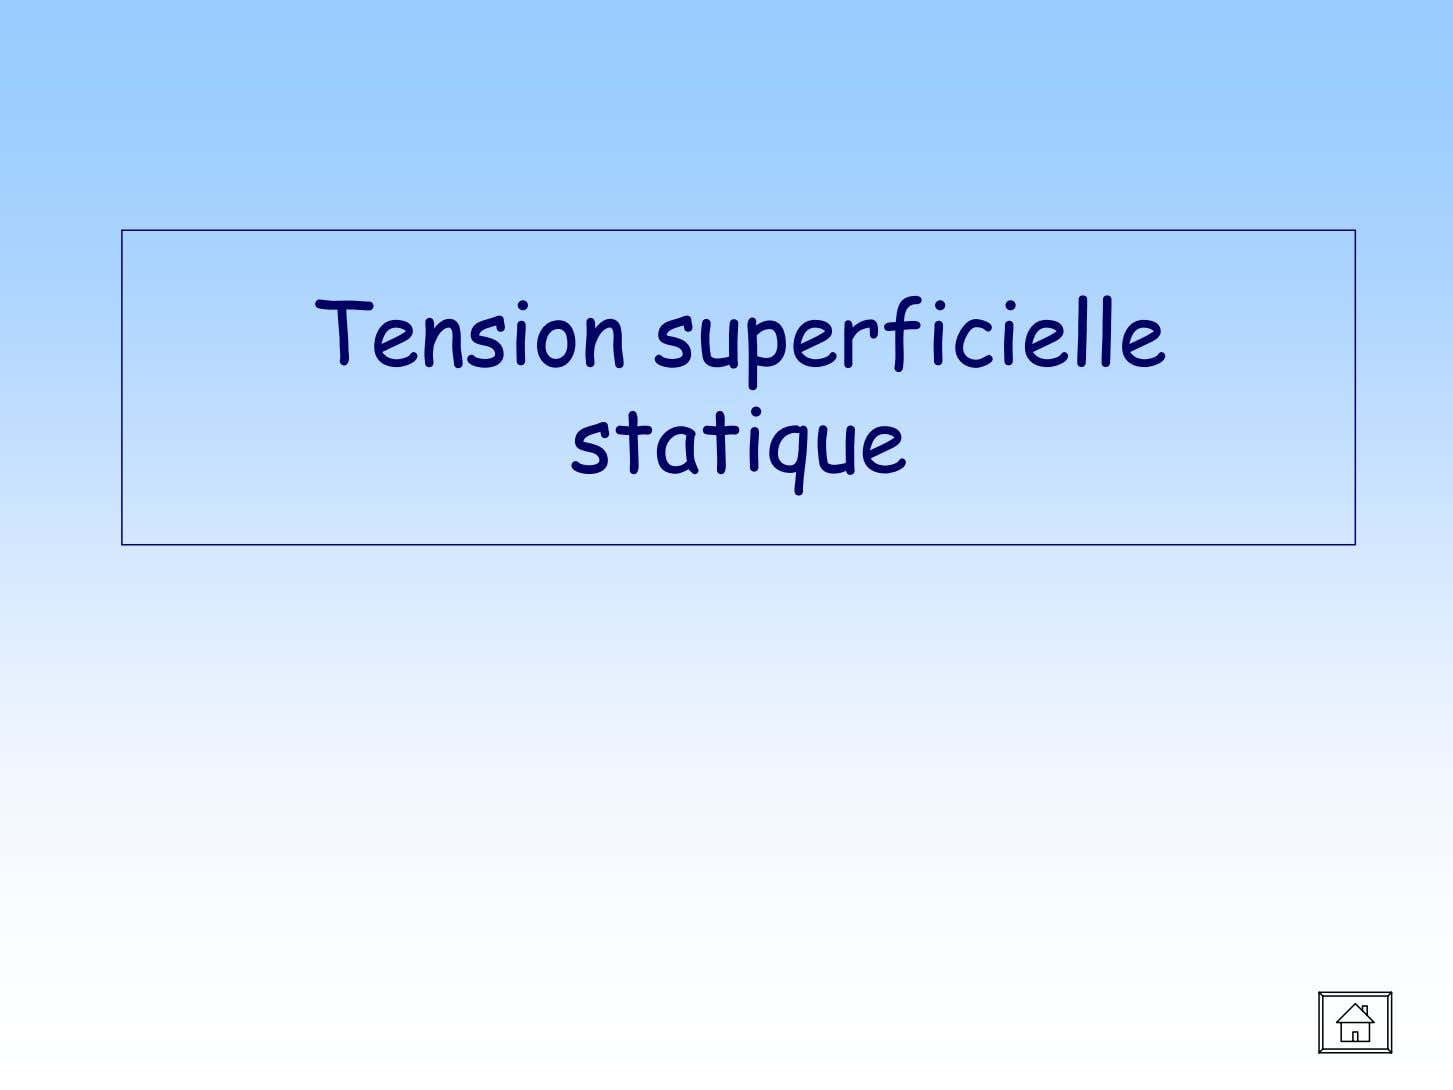 Tension superficielle statique